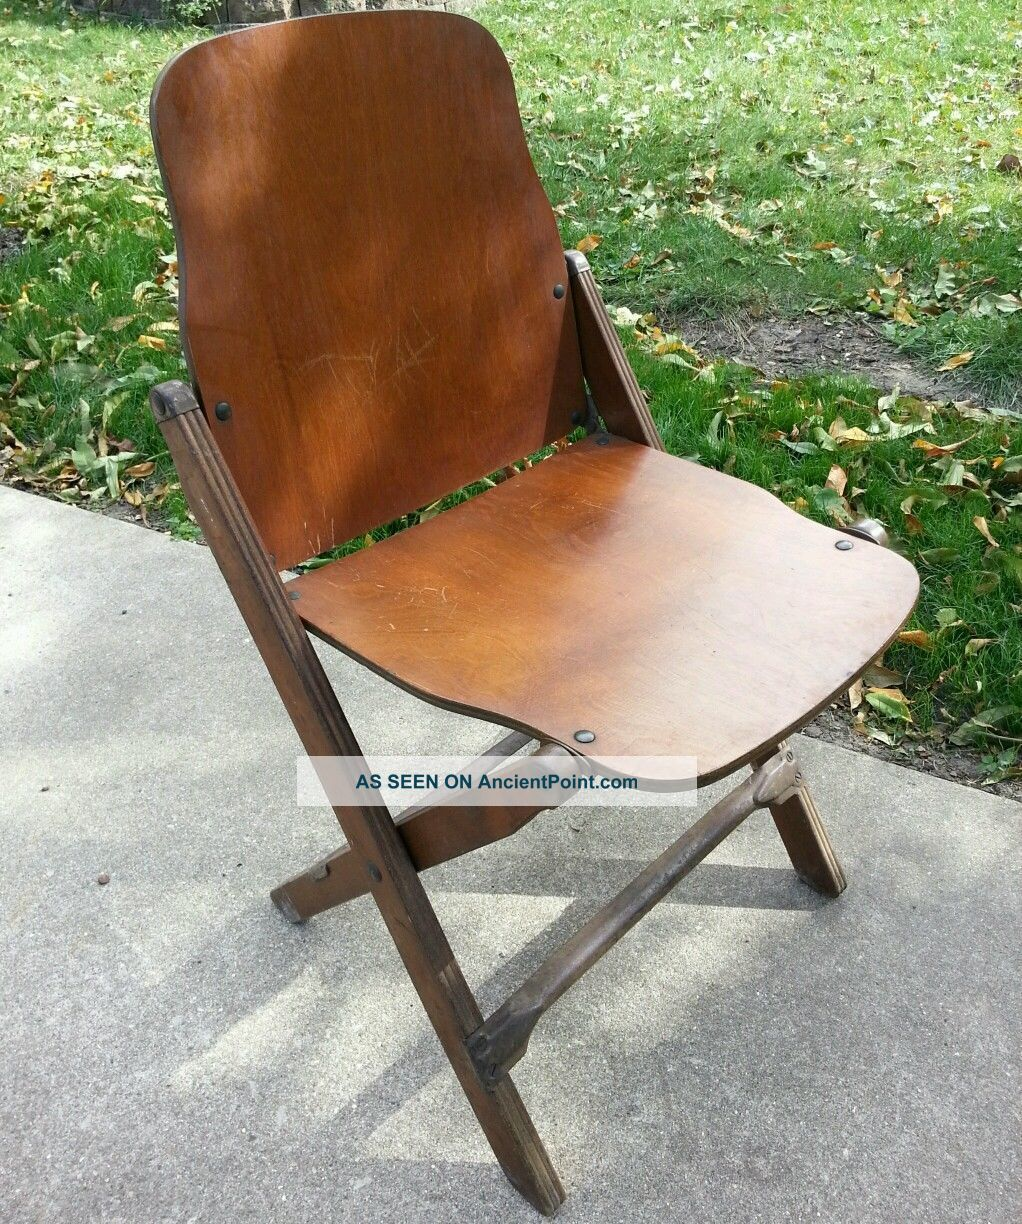 Antique Vintage American Seating Company Wood Folding Chair Very Rare Piece